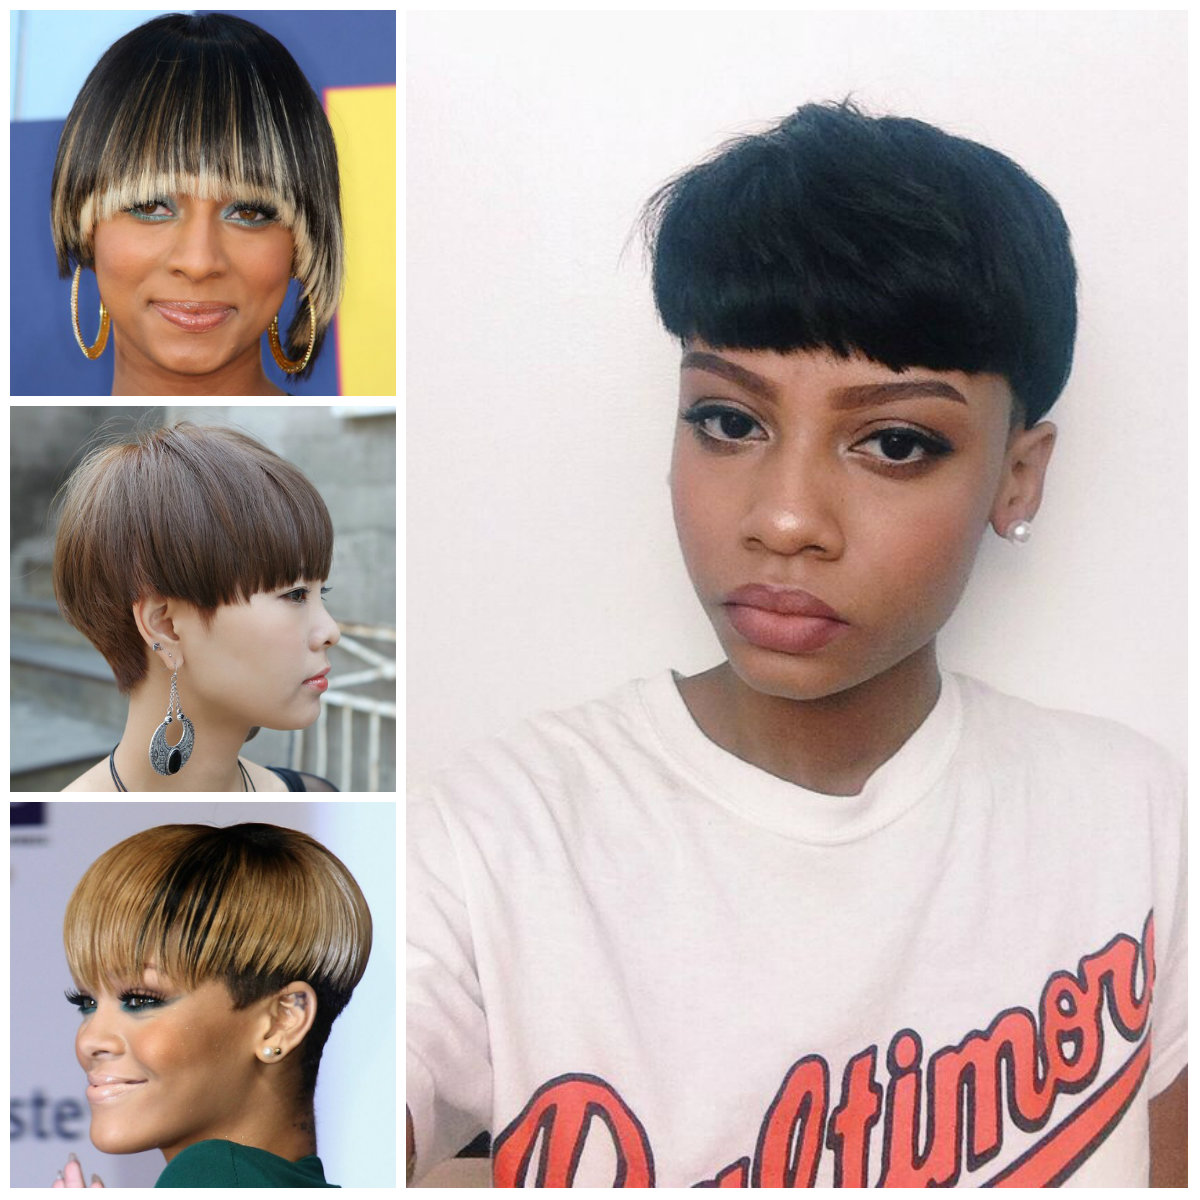 "Mushroom haircut for women ""width ="" 500 ""height ="" 500 ""data-jpibfi-post-excerpt ="" ""data-jpibfi-post-url ="" http://www.frisuren-2018.com/pilzhaarschnitt-fuer-frauen / ""data-jpibfi-post-title ="" Mushroom haircut for women ""data-jpibfi-src ="" http://www.frisuren-2018.com/wp-content/uploads/2019/05/Movie haircut for women. jpg ""/> The sides are preferably very short so that the design or shape of the mushroom is better visible. Curious about more? Well, we've rounded up some cool and chic mushrooms <strong>Haircuts for women</strong>, Look at her! <span id="